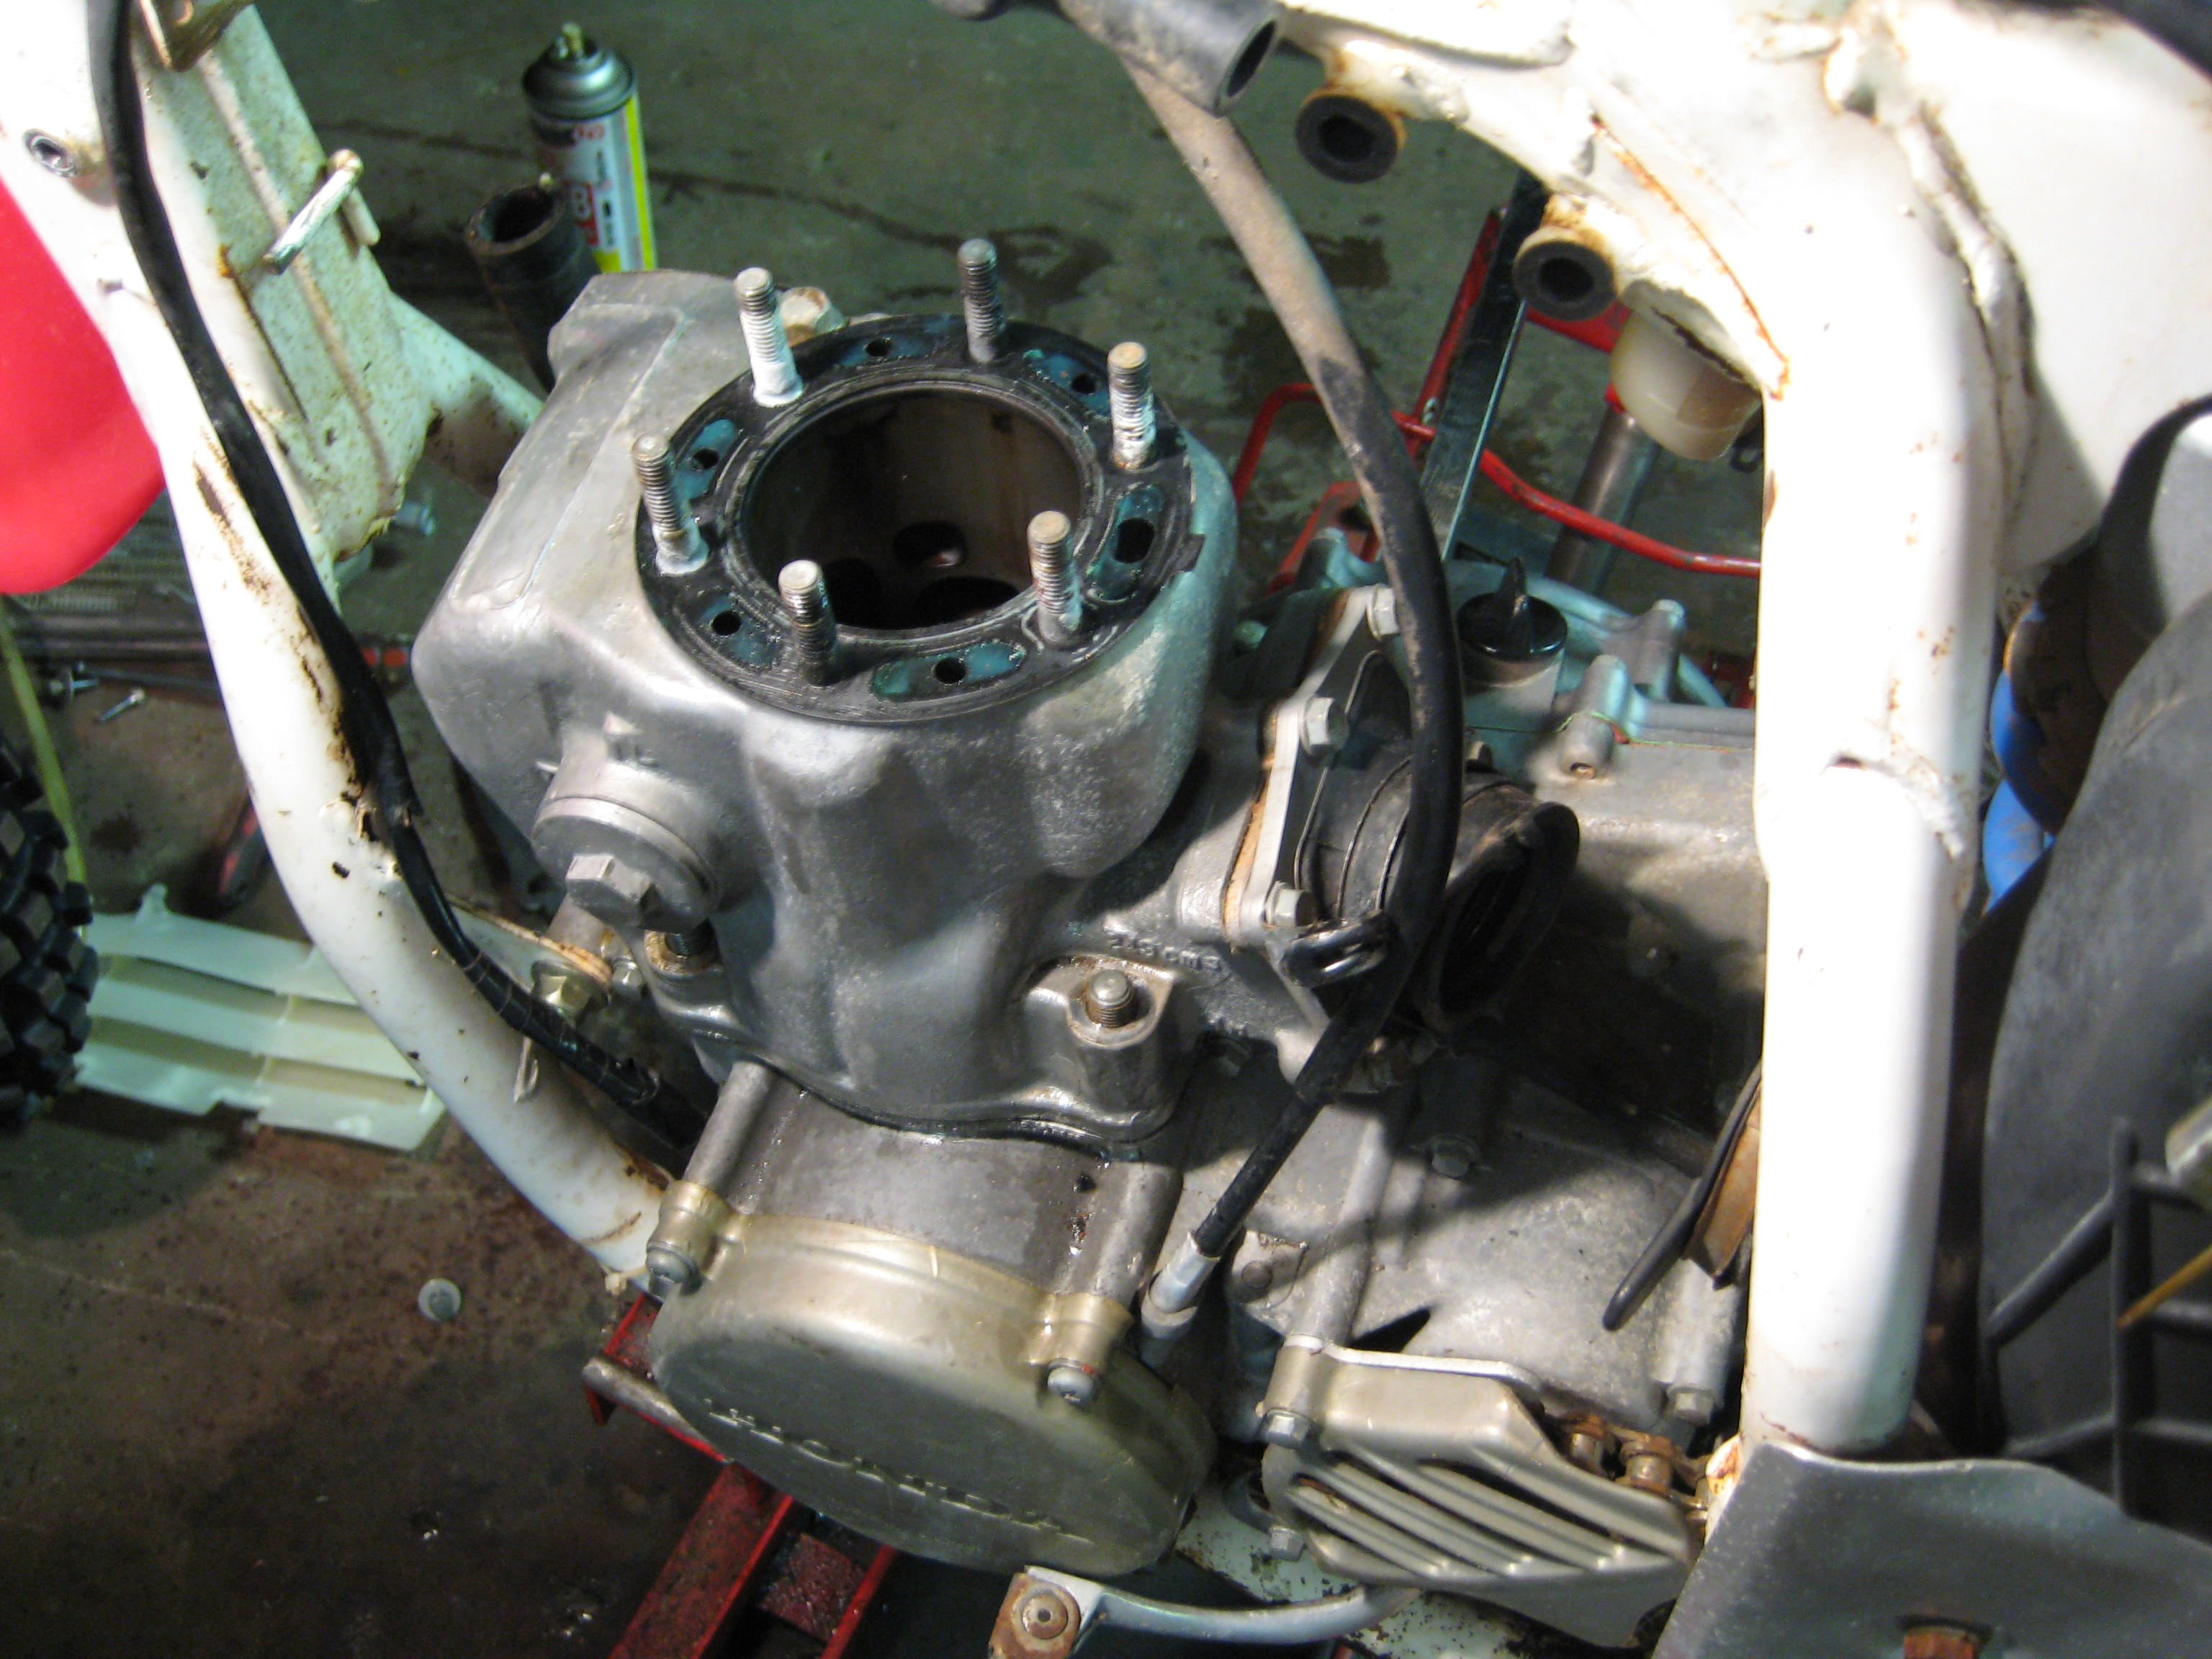 Removing the Cylinder